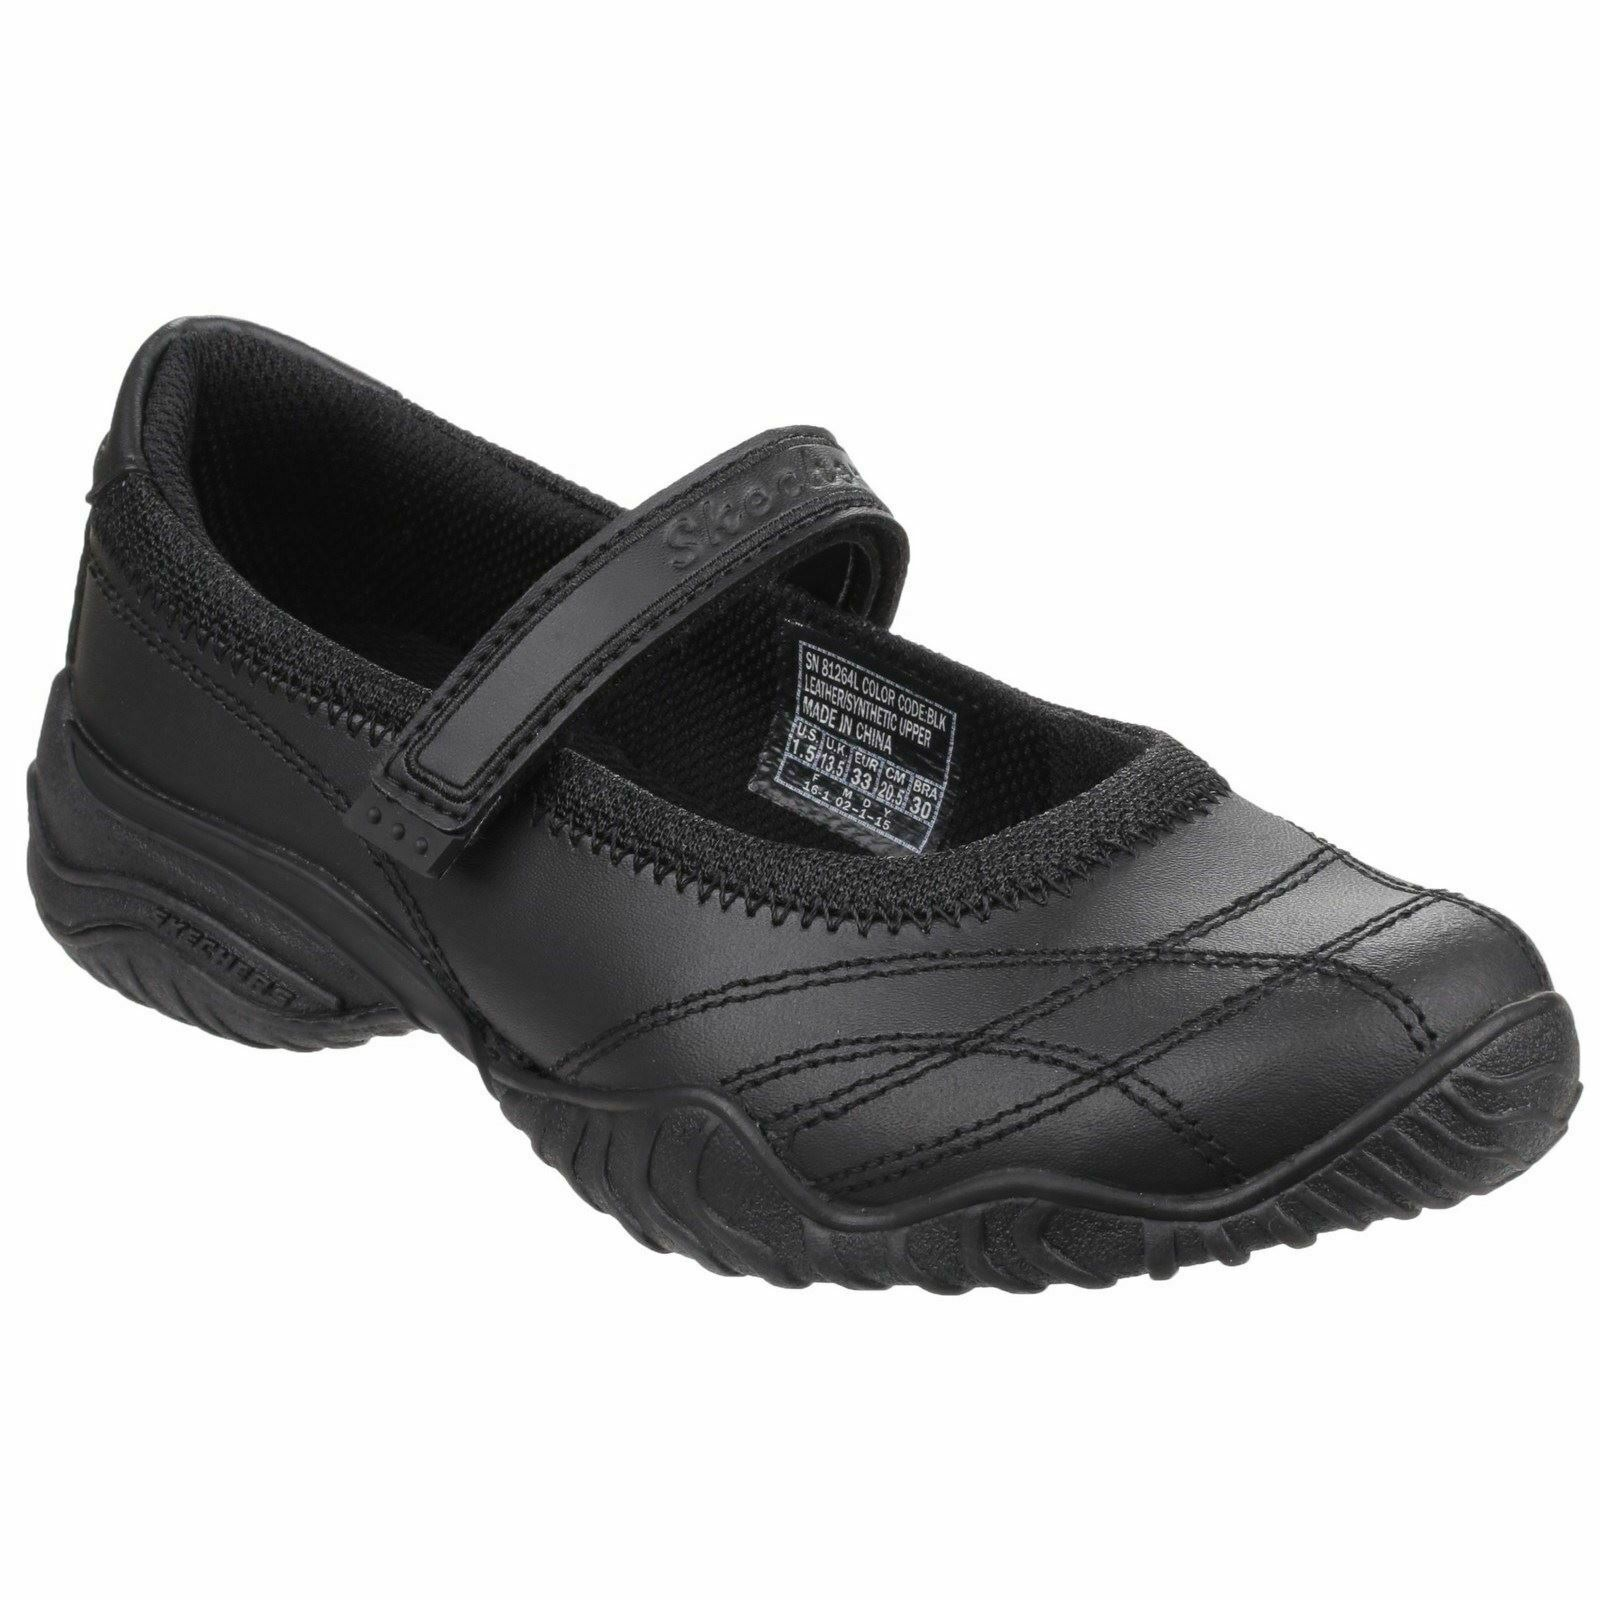 Skechers Black Velocity Pouty Shoes - Valley Sports UK